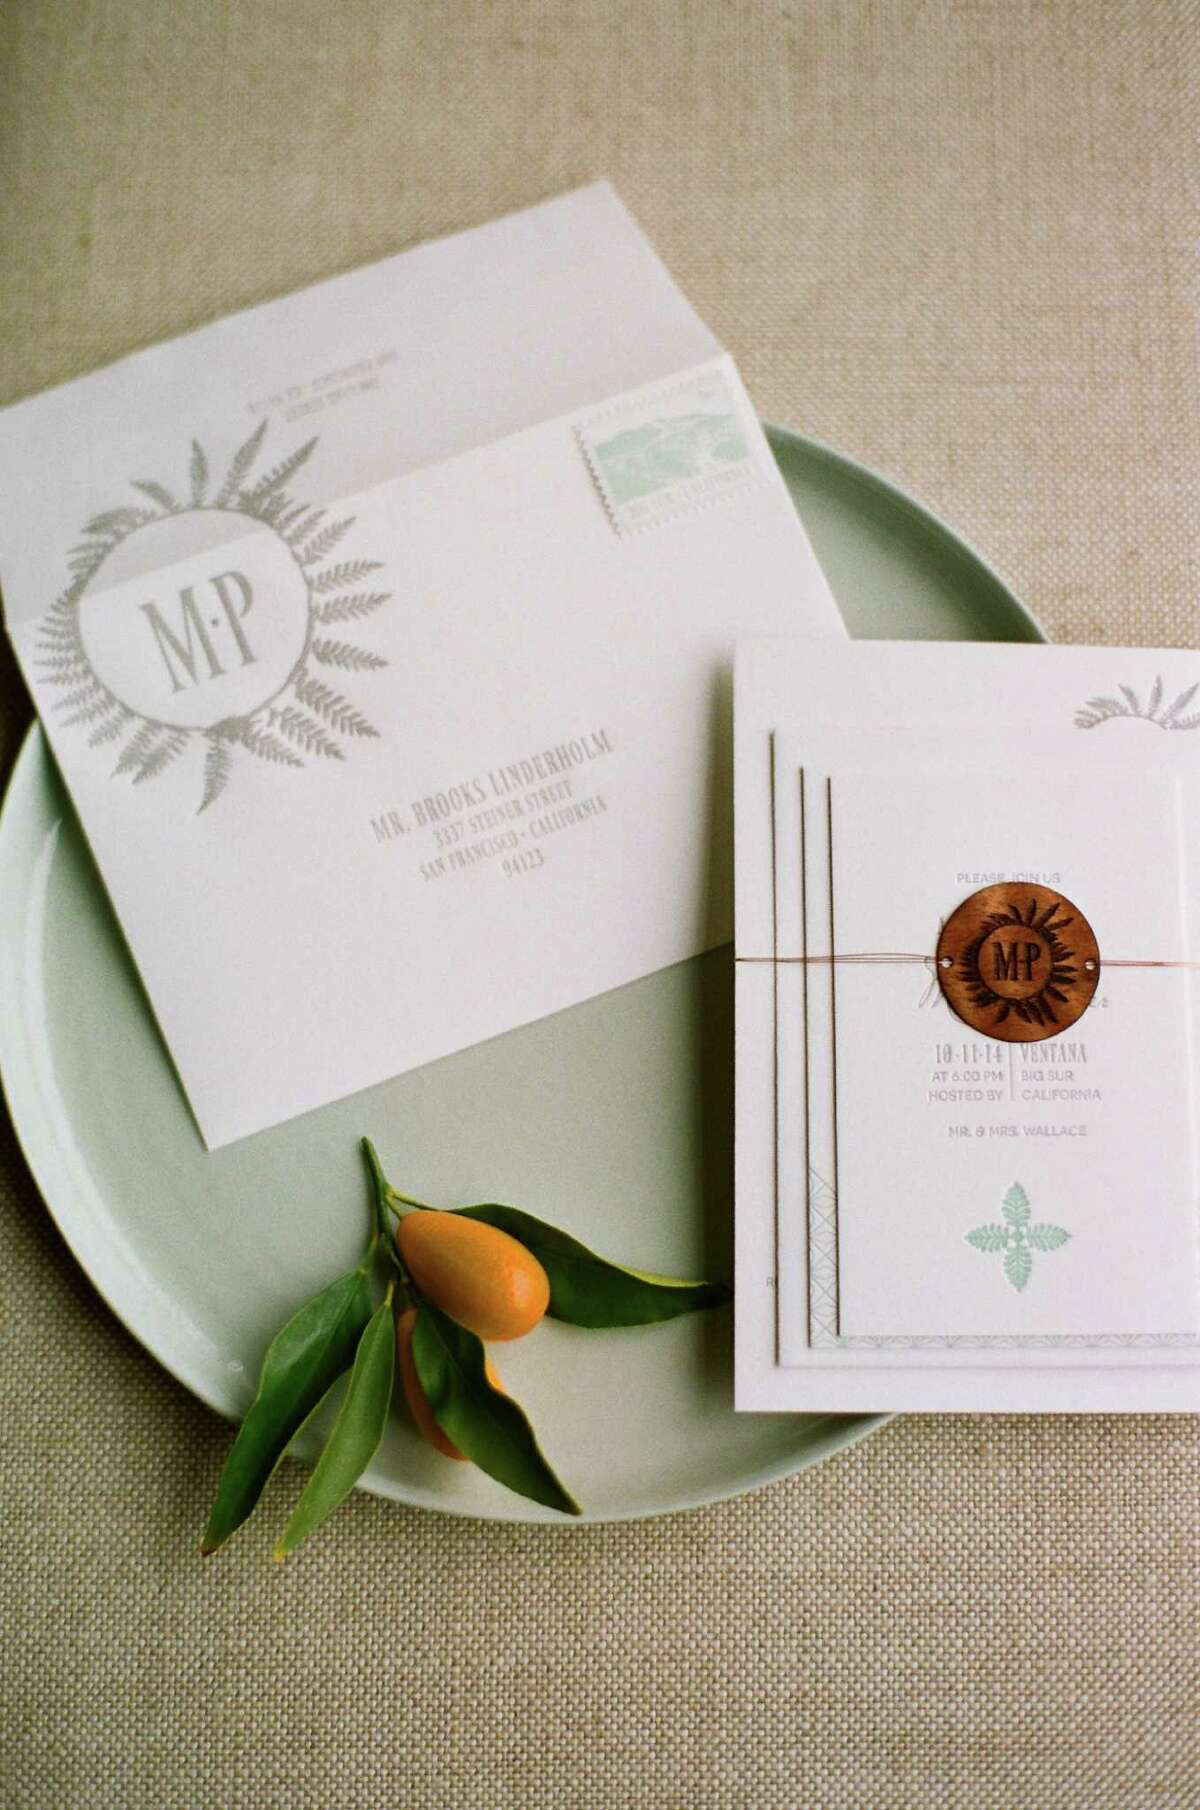 An inviting brand Couples are using the visuals they develop for invitations and wedding collateral as personal branding elements, speaking to their heritage, relationship or venue.